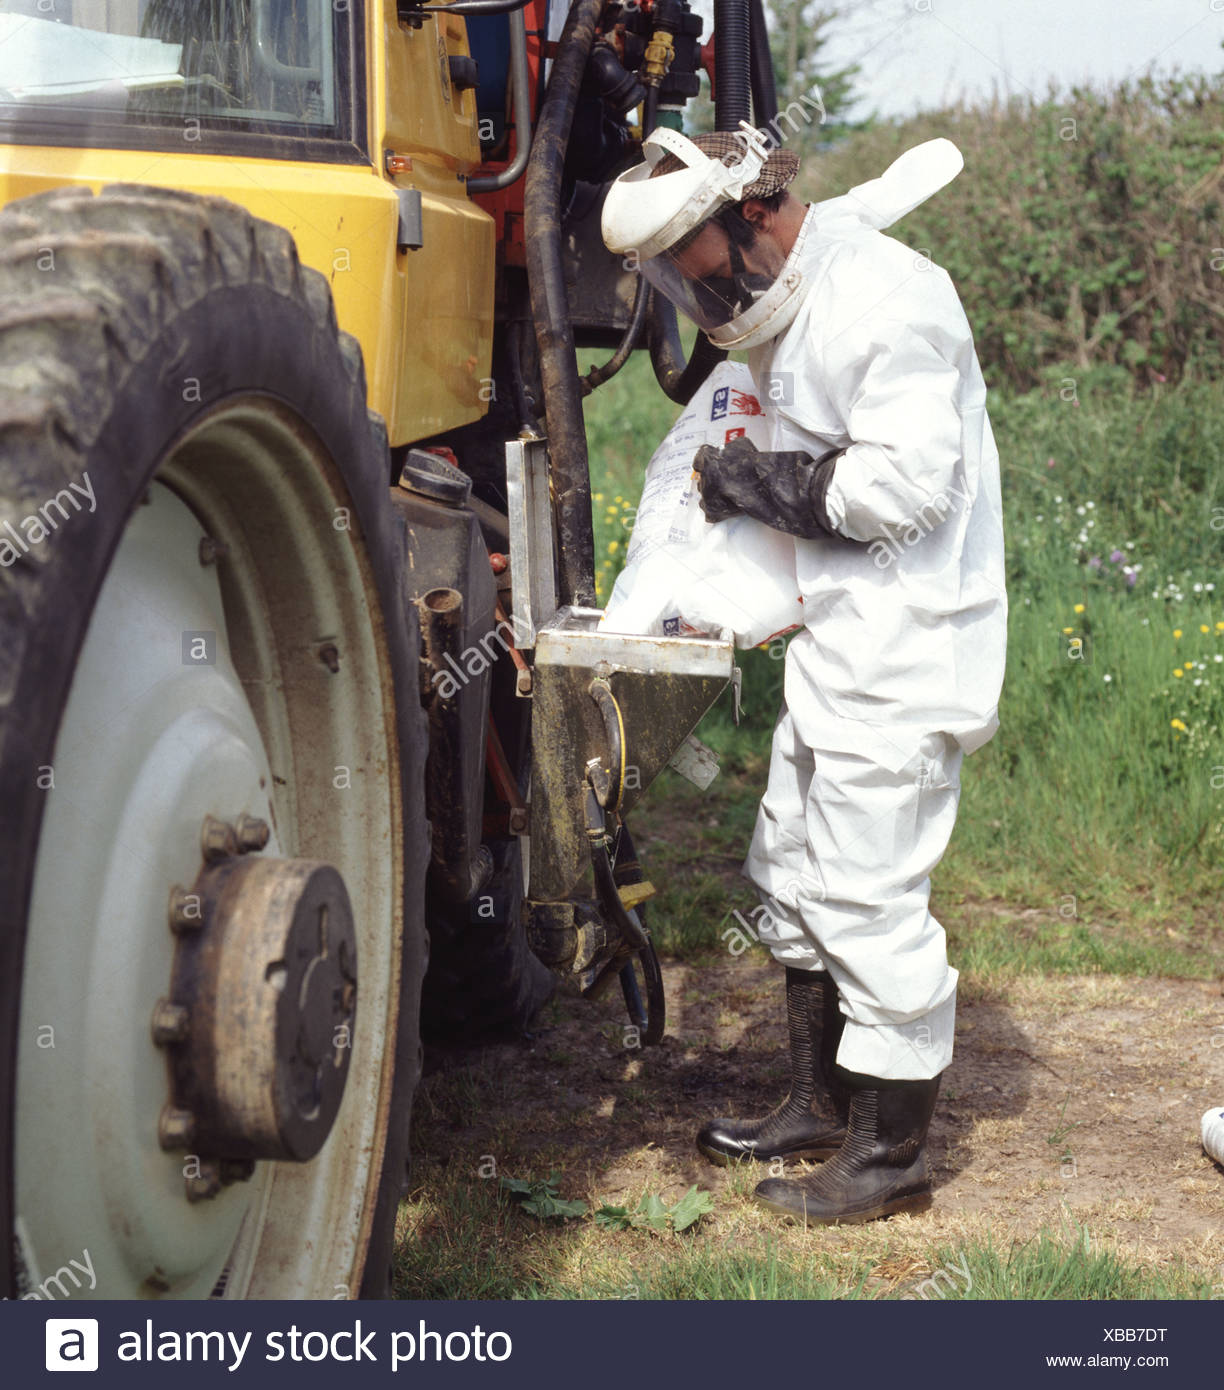 Driver of agricultural sprayer with full protective clothing filling tank with magnesium sulphate - Stock Image